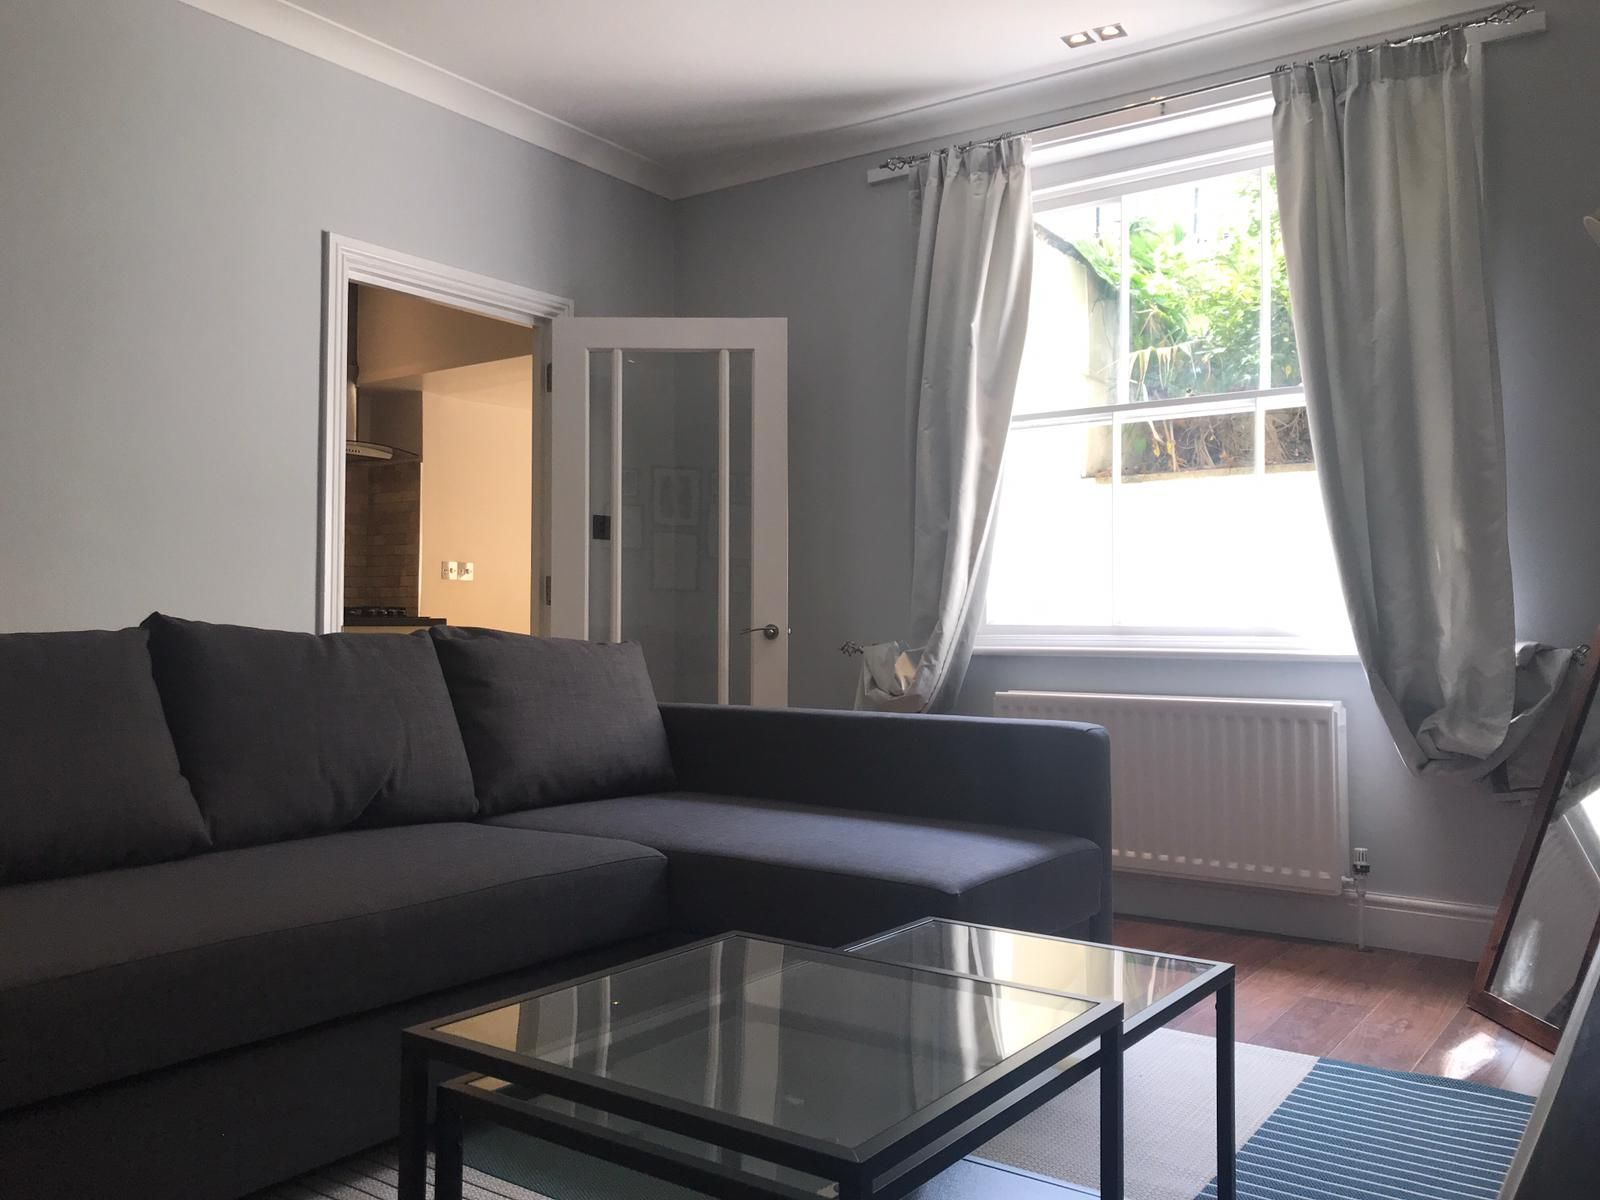 2 bedroom flat flat/apartment To Let in London - Spacious living room